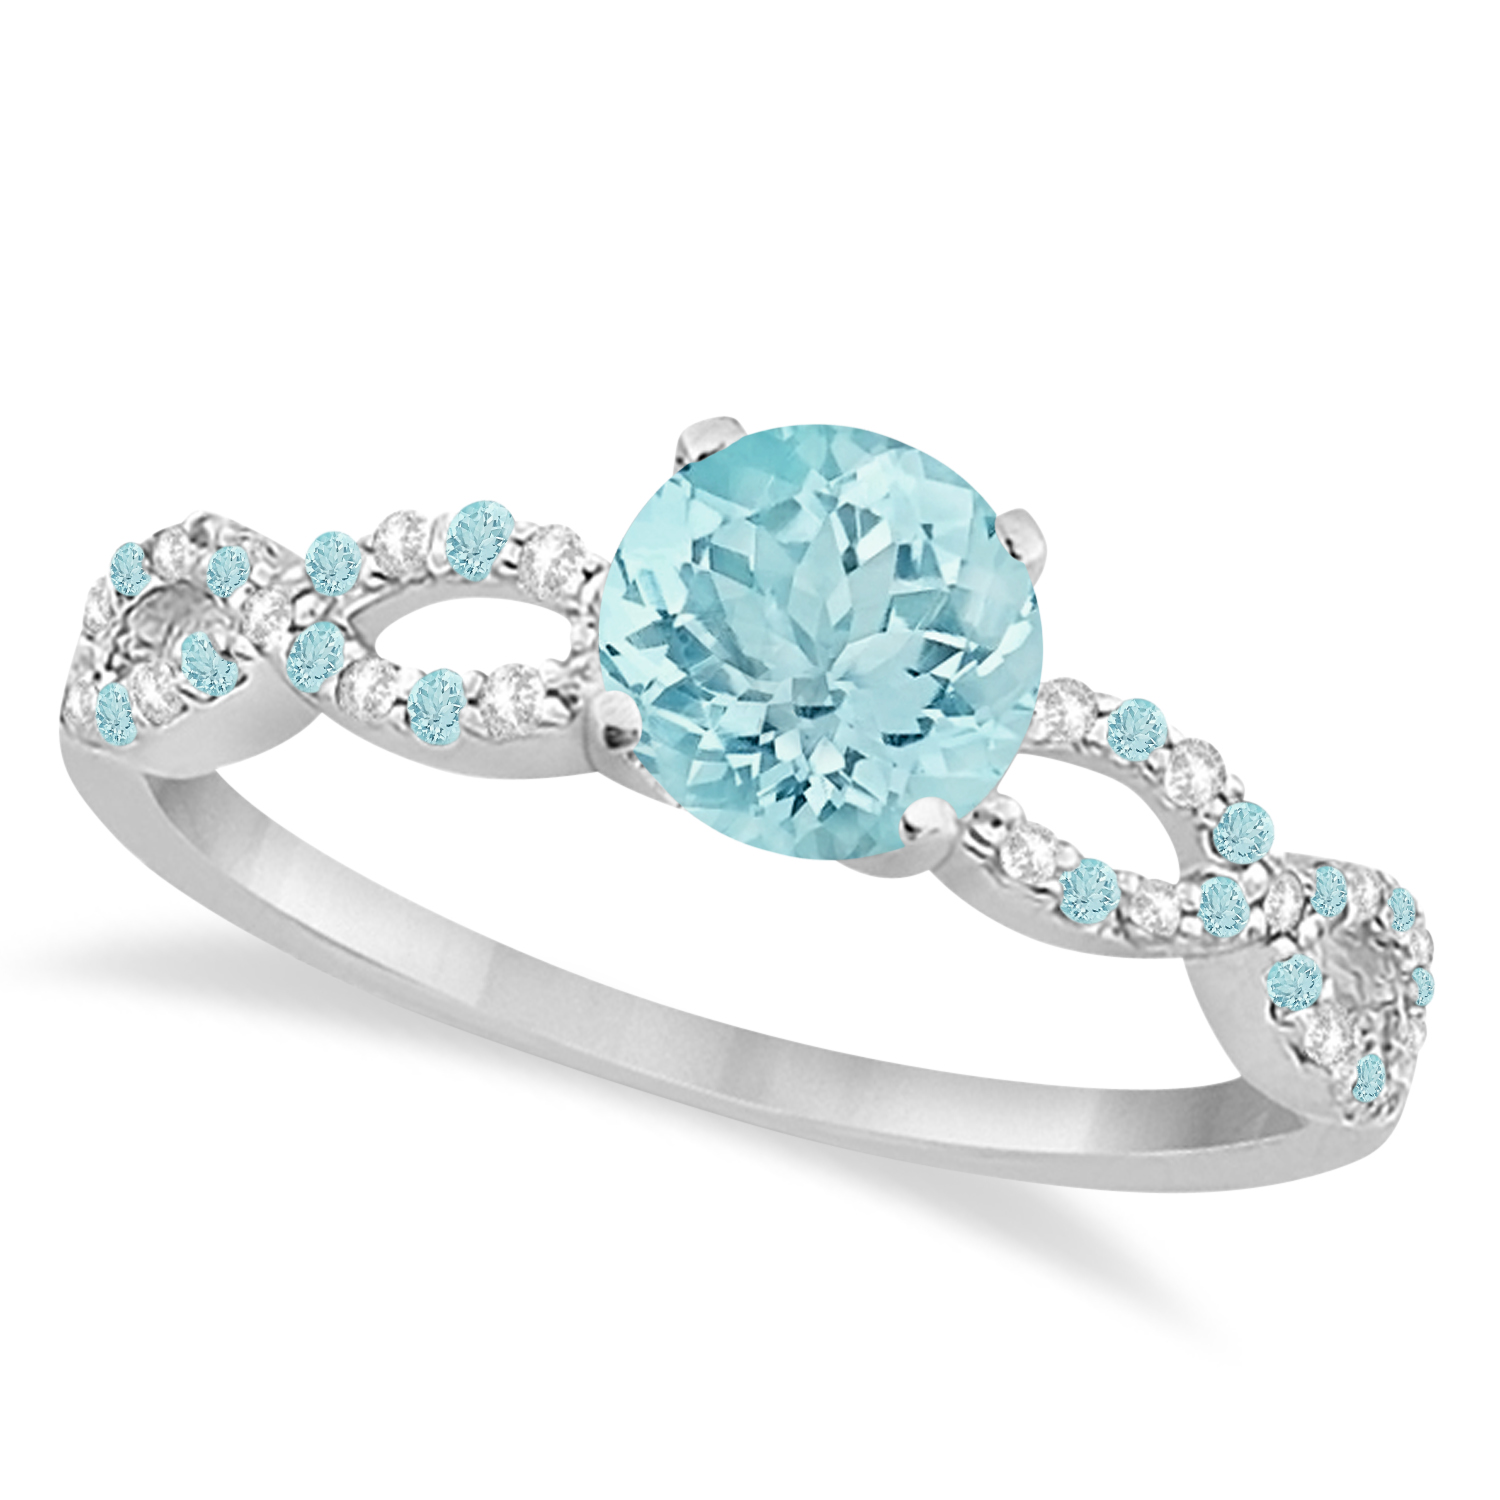 infinity diamond aquamarine engagement ring 14k white gold 090ct - Aquamarine Wedding Ring